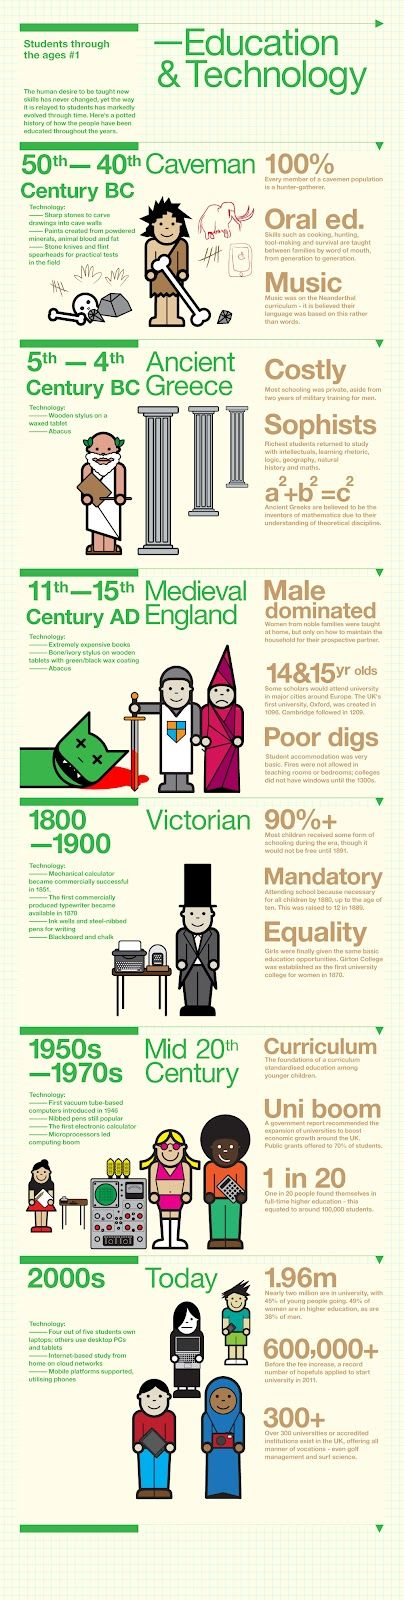 History of Technology in Education #Infographic  #edtech